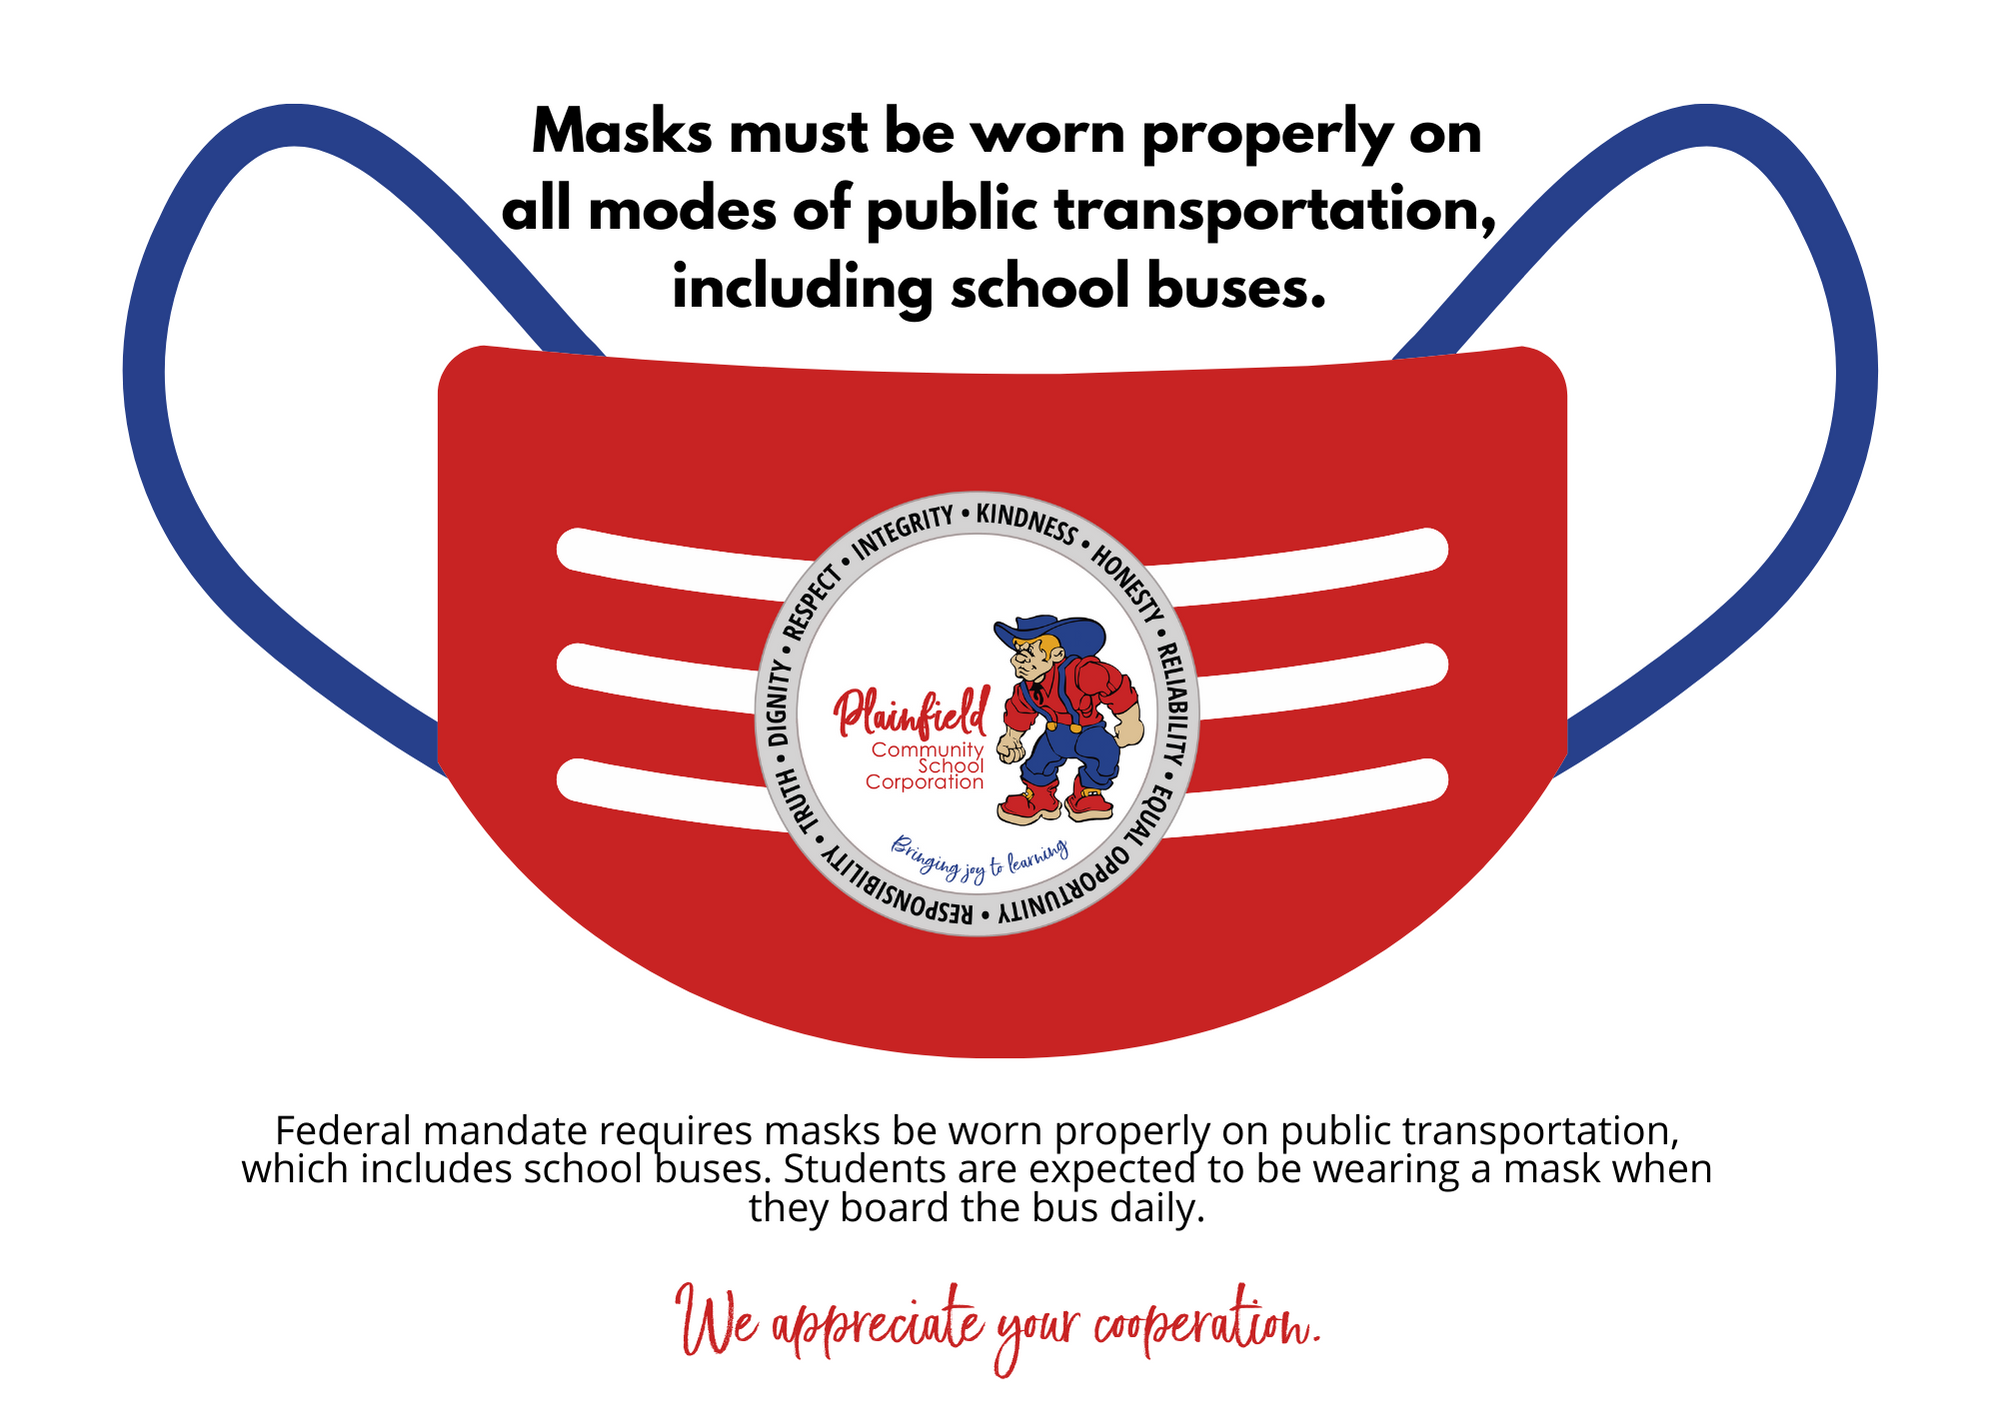 Masks must be properly worn on PCSC school buses